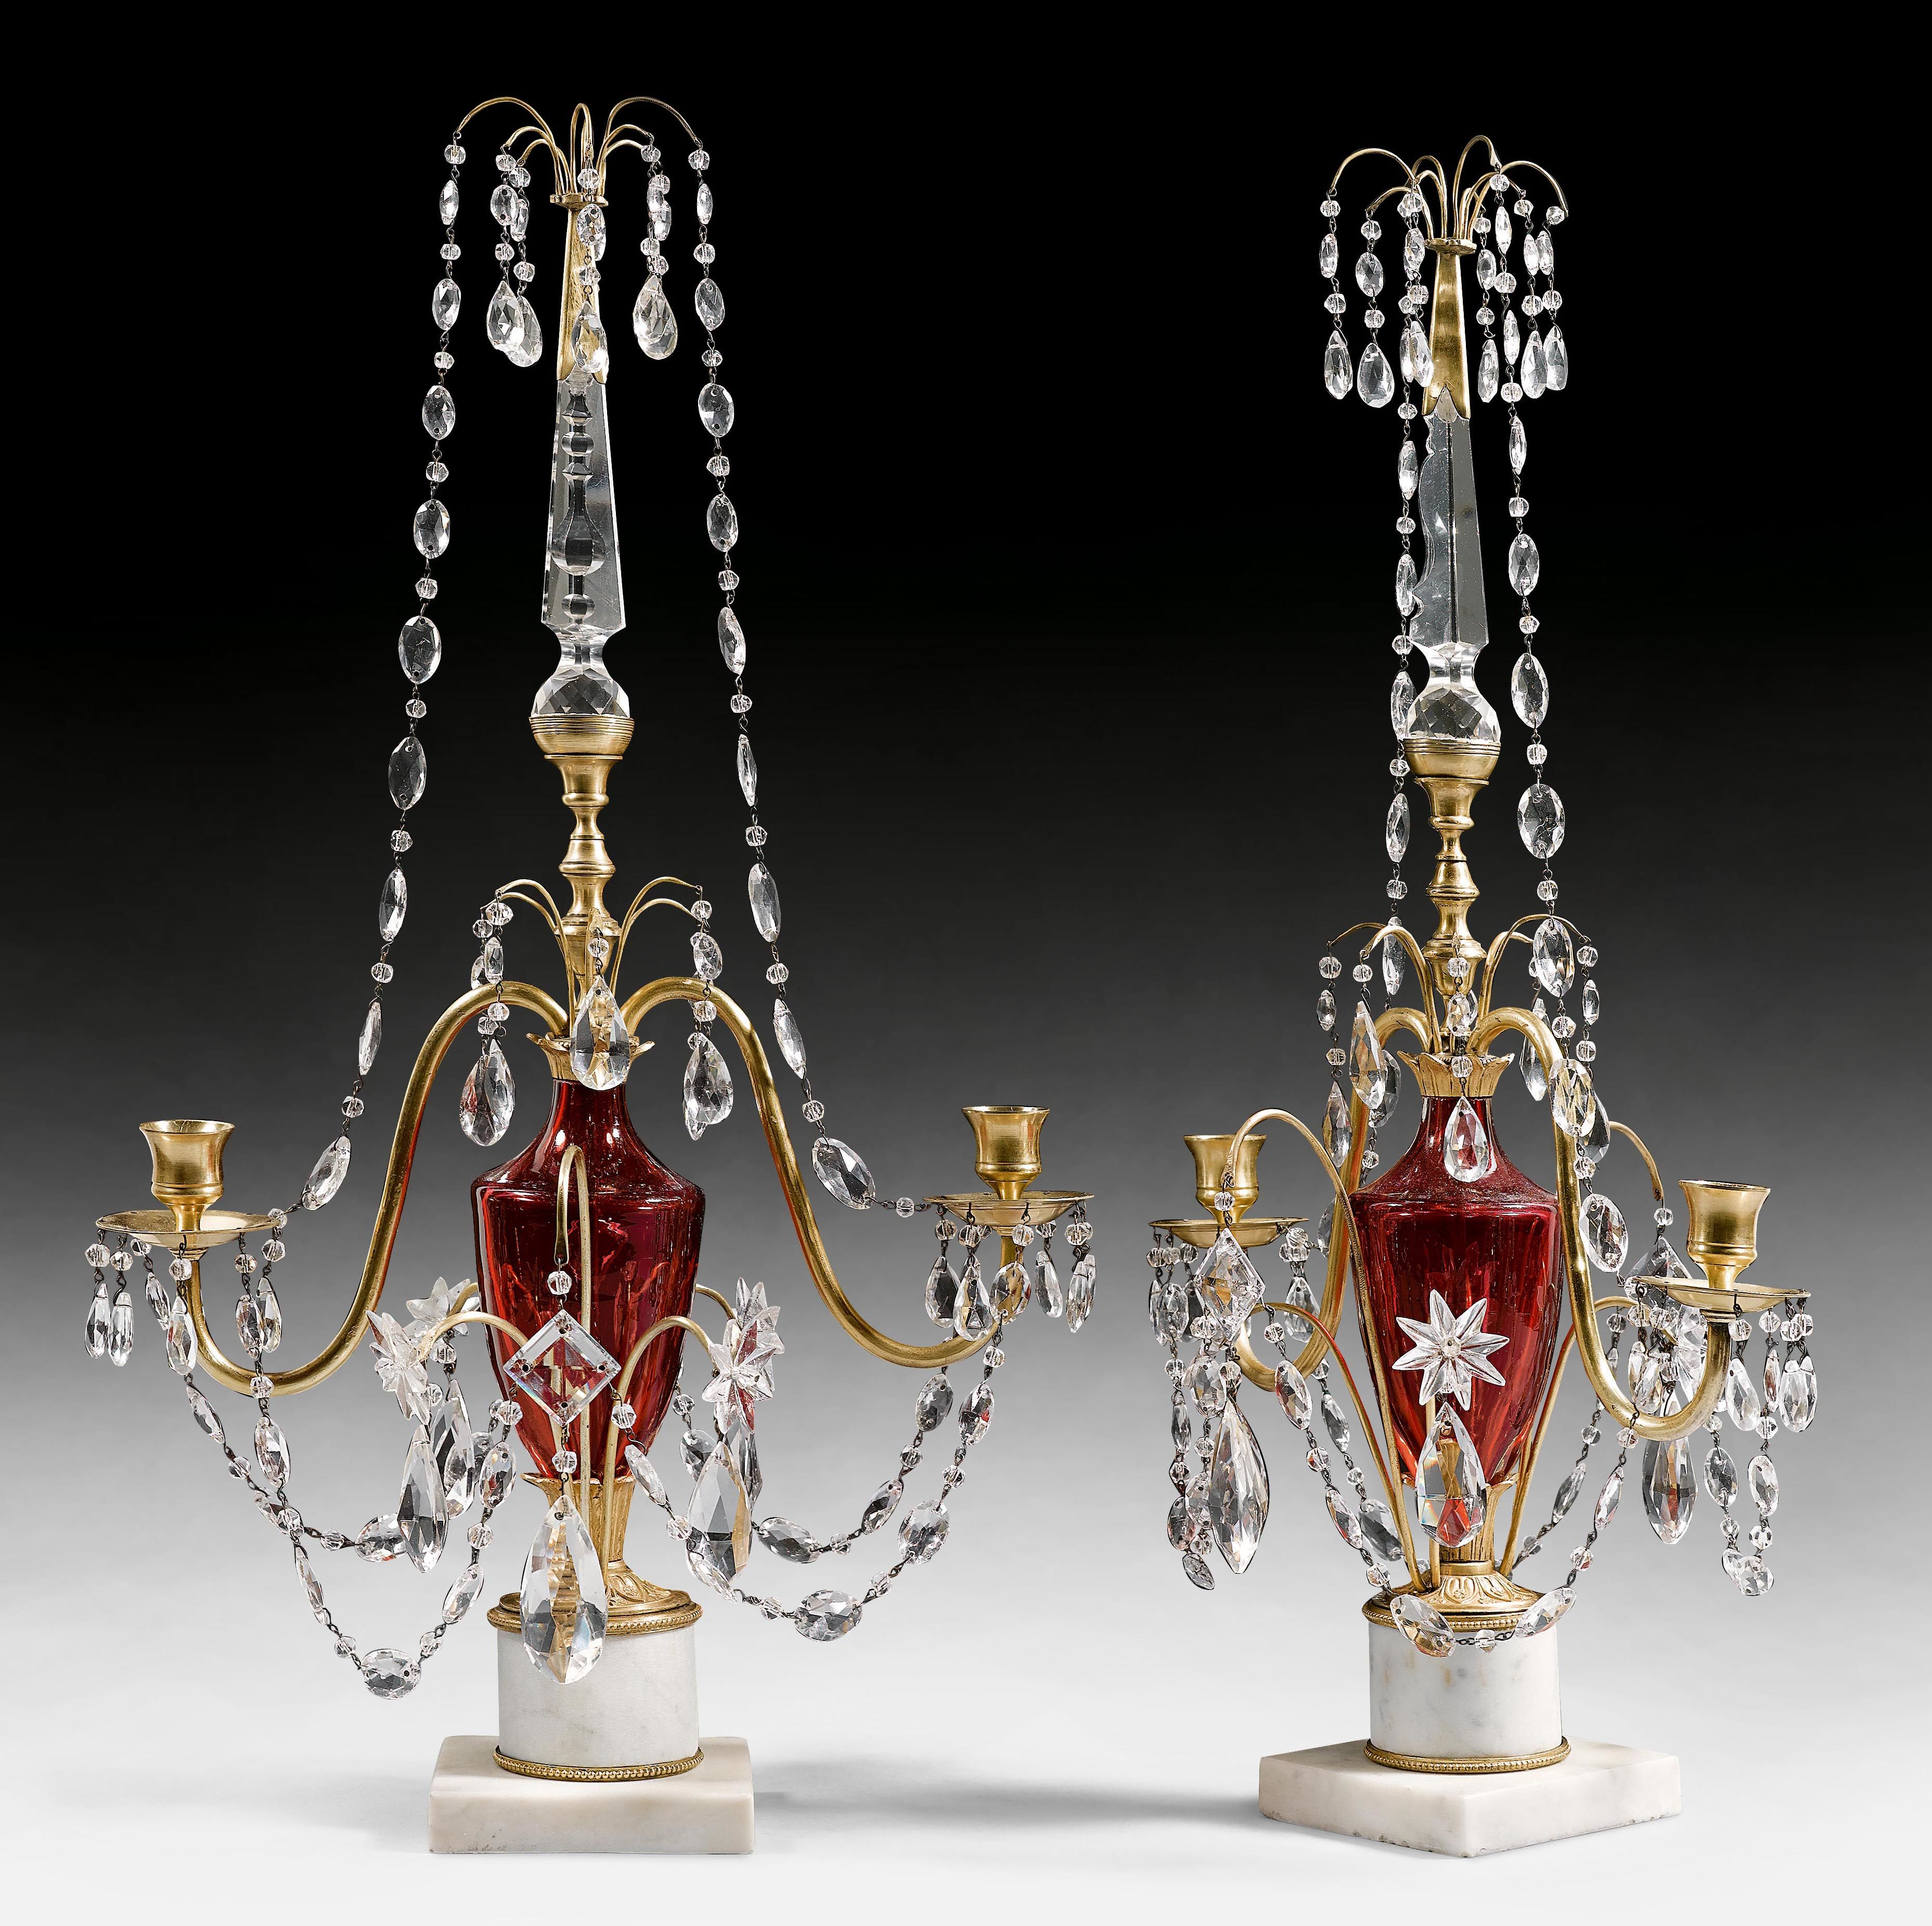 PAIR OF CANDELABRAS,